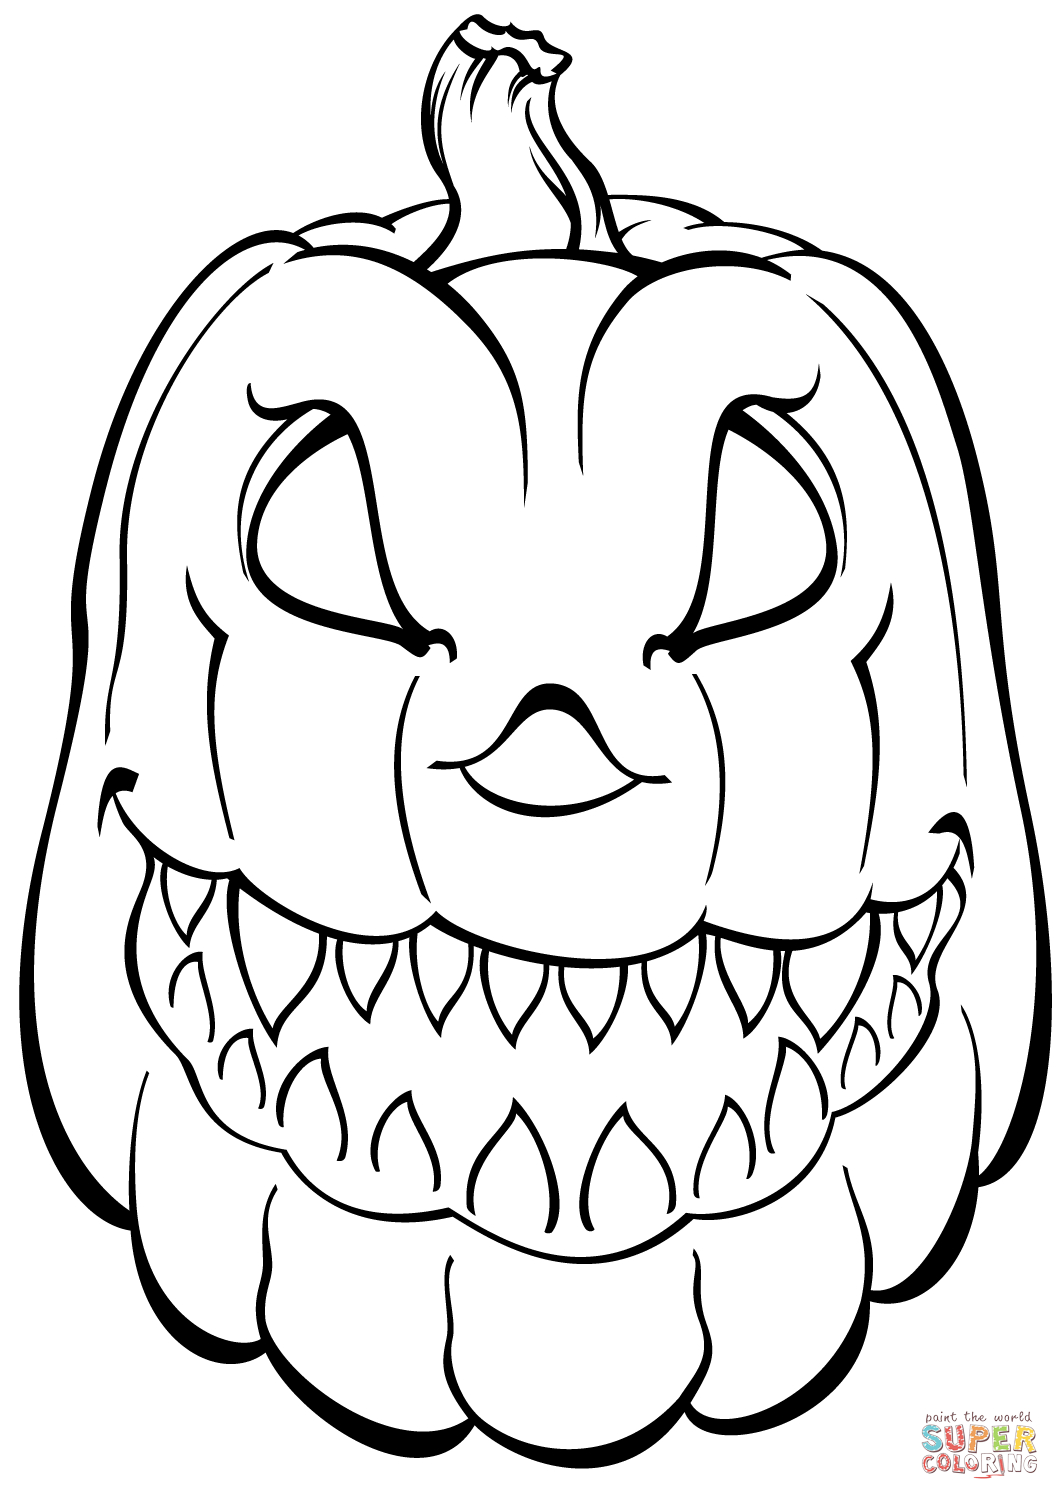 Scary Pumpkin Coloring Page | Free Printable Coloring Pages - Free Halloween Pumpkin Printables